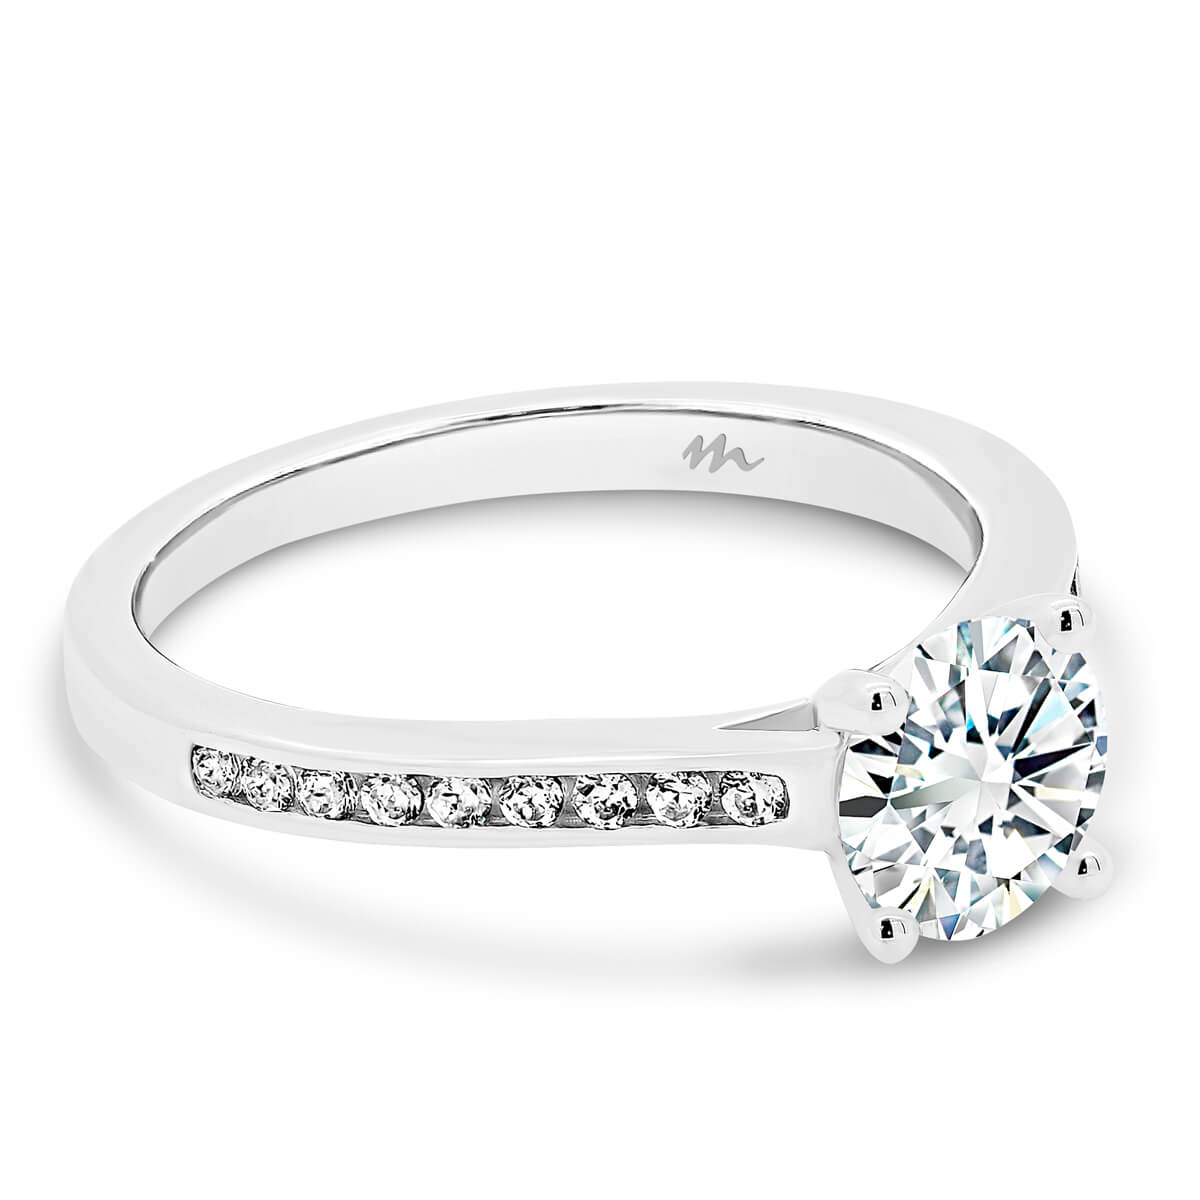 London 4 claw round moissanite ring with channel set band